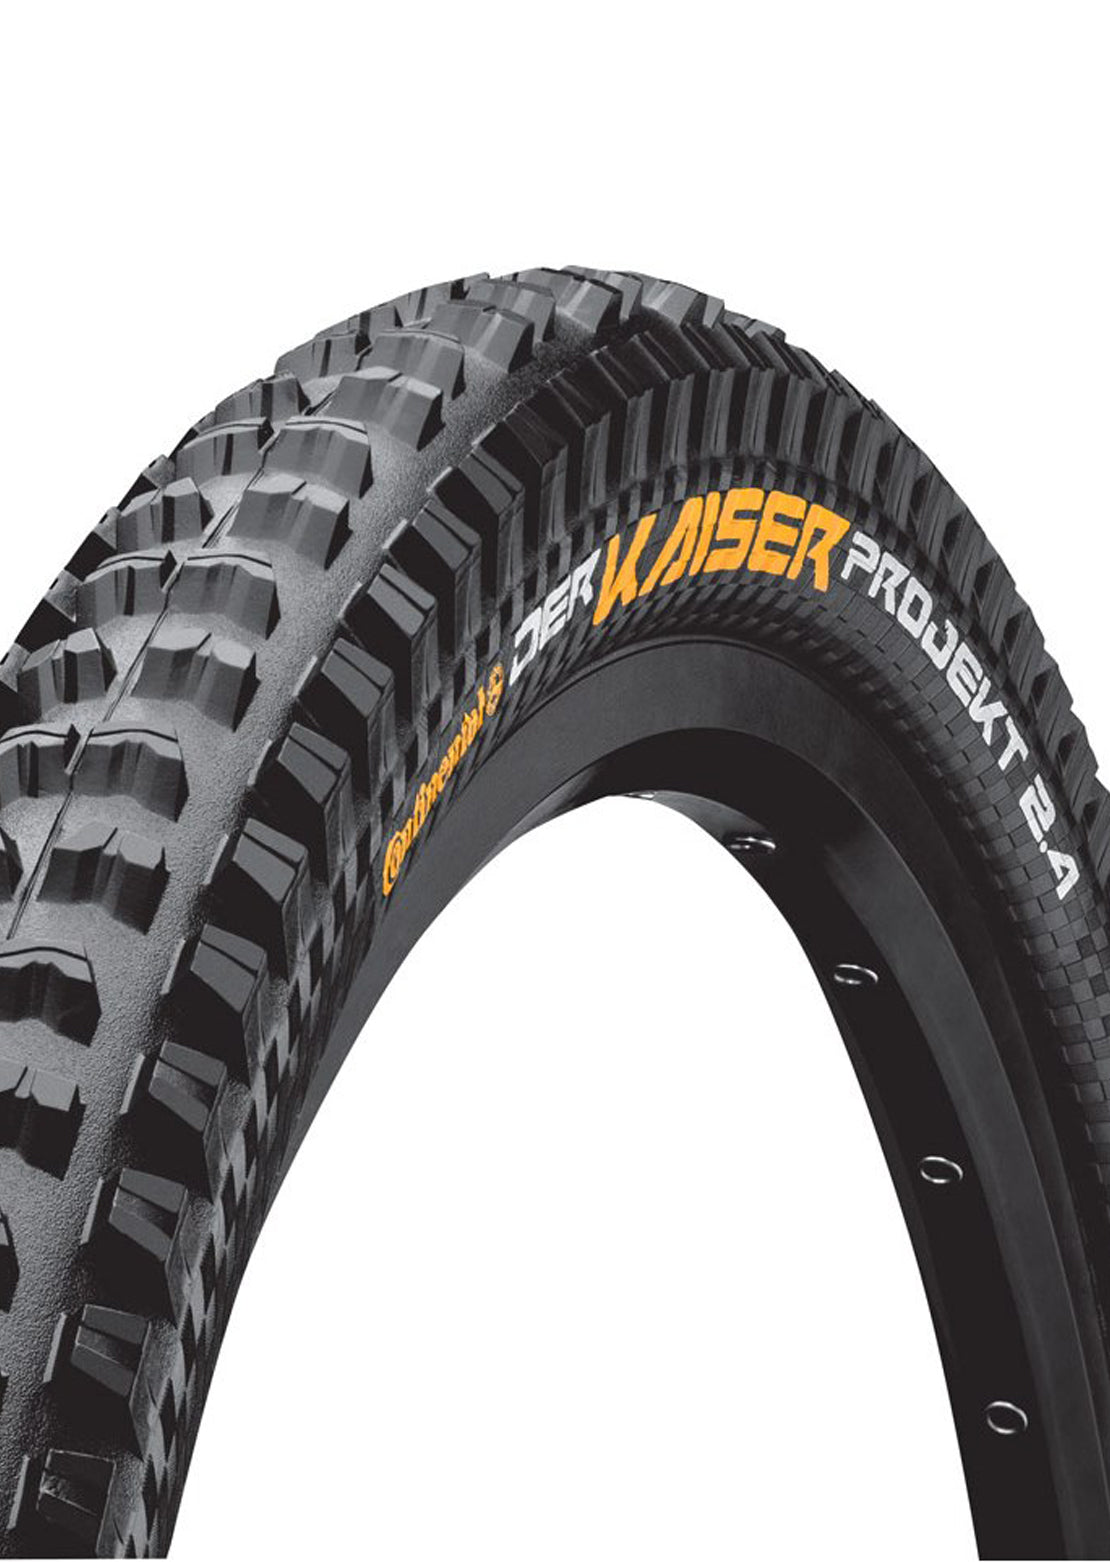 "Continental Der Kaiser Projekt Mountain Bike Tires - 29"" x 2.4"" Black"